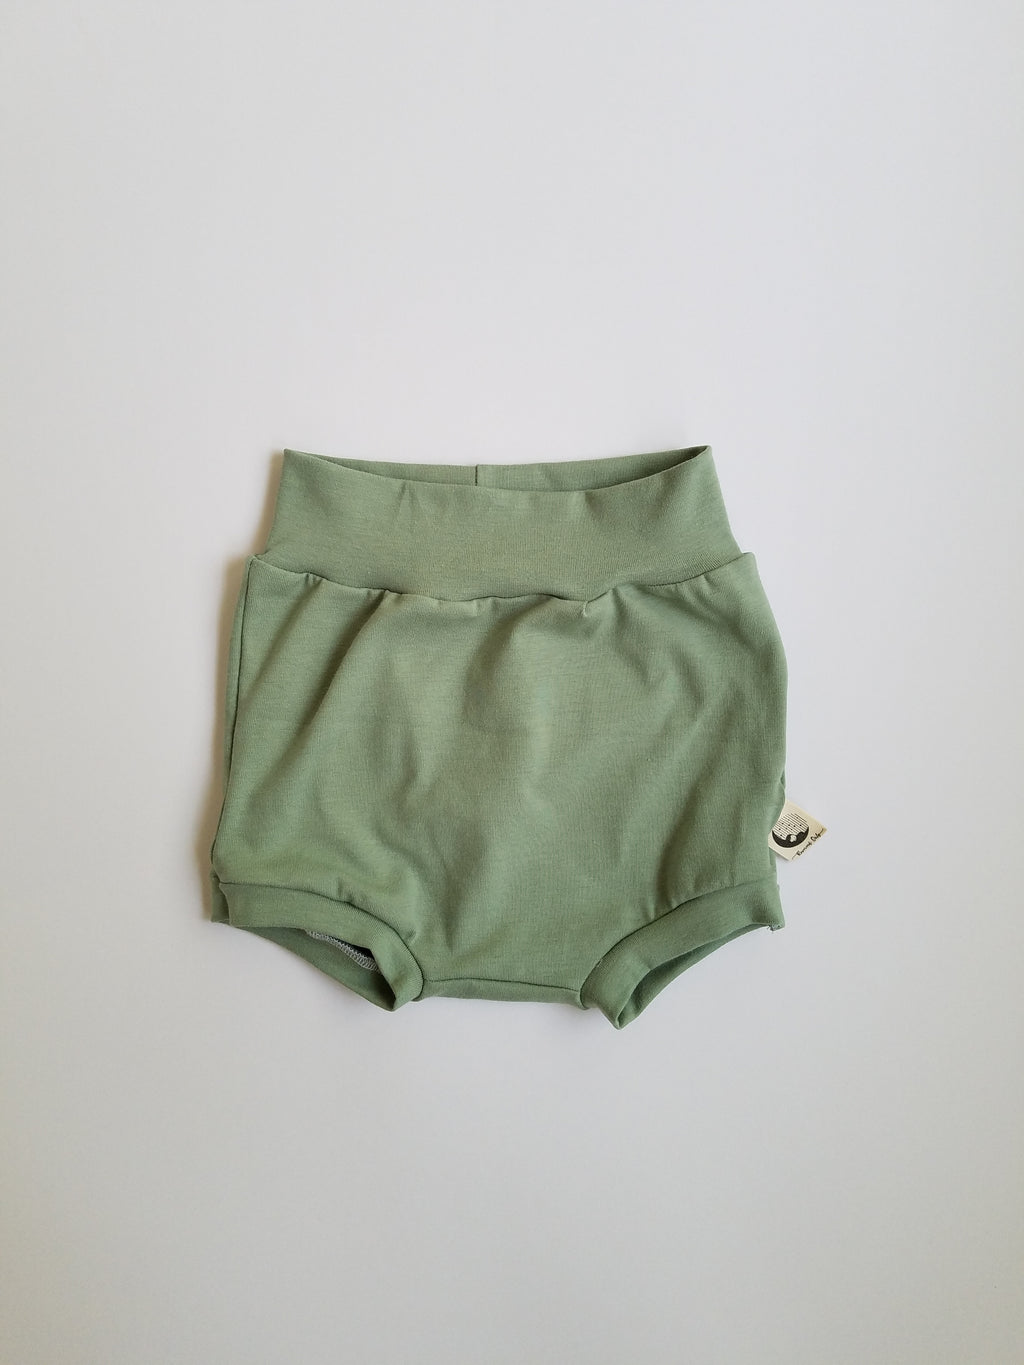 DIAPER COVER | BUMMIES - SOLIDS - SAGE GREEN